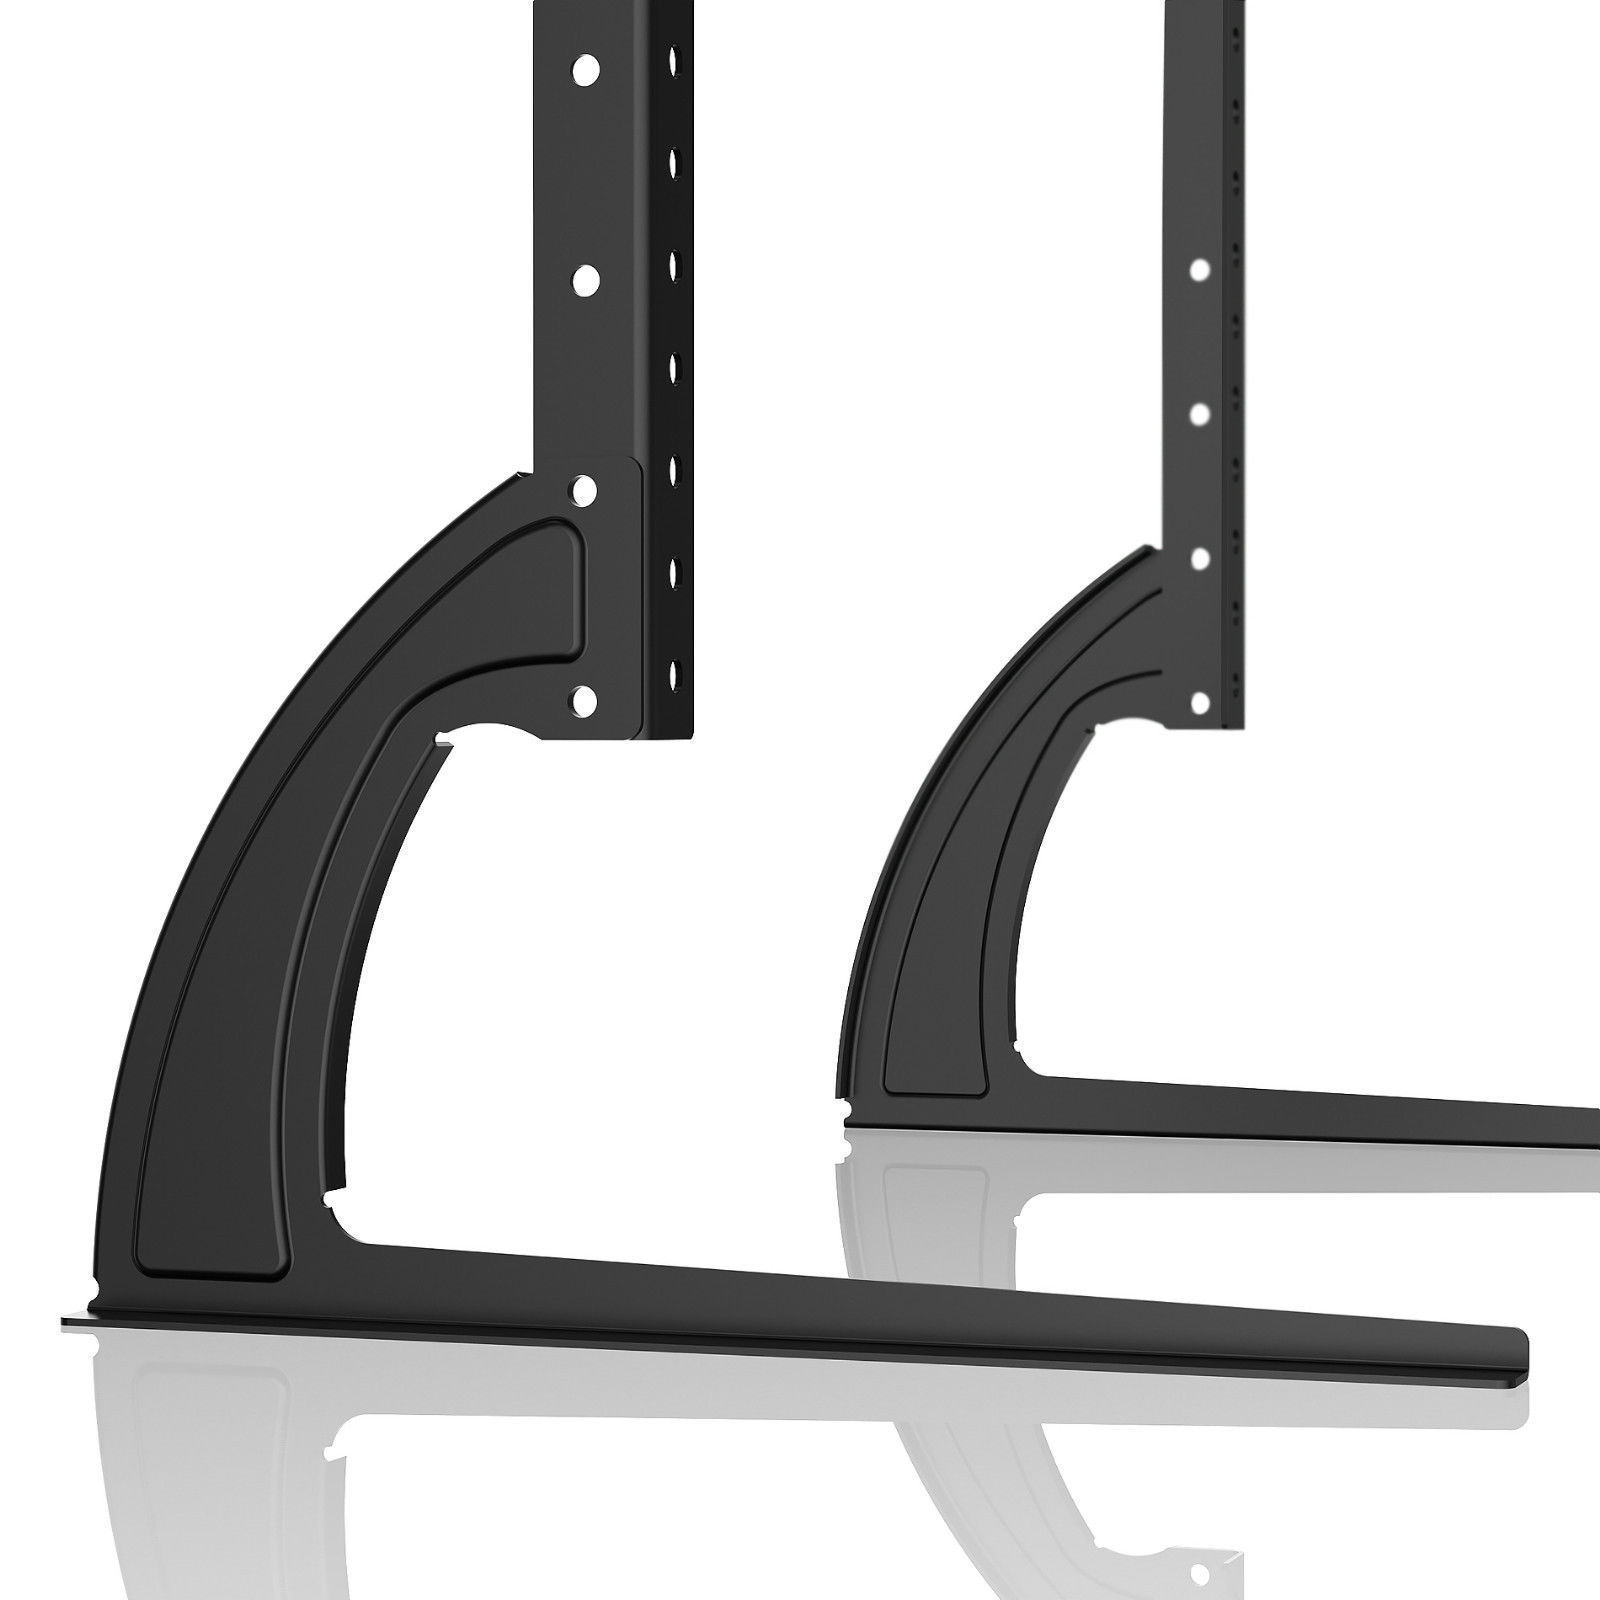 Universal Table Top TV Stand Legs for Sony KDL-40EX720 Height Adjustable